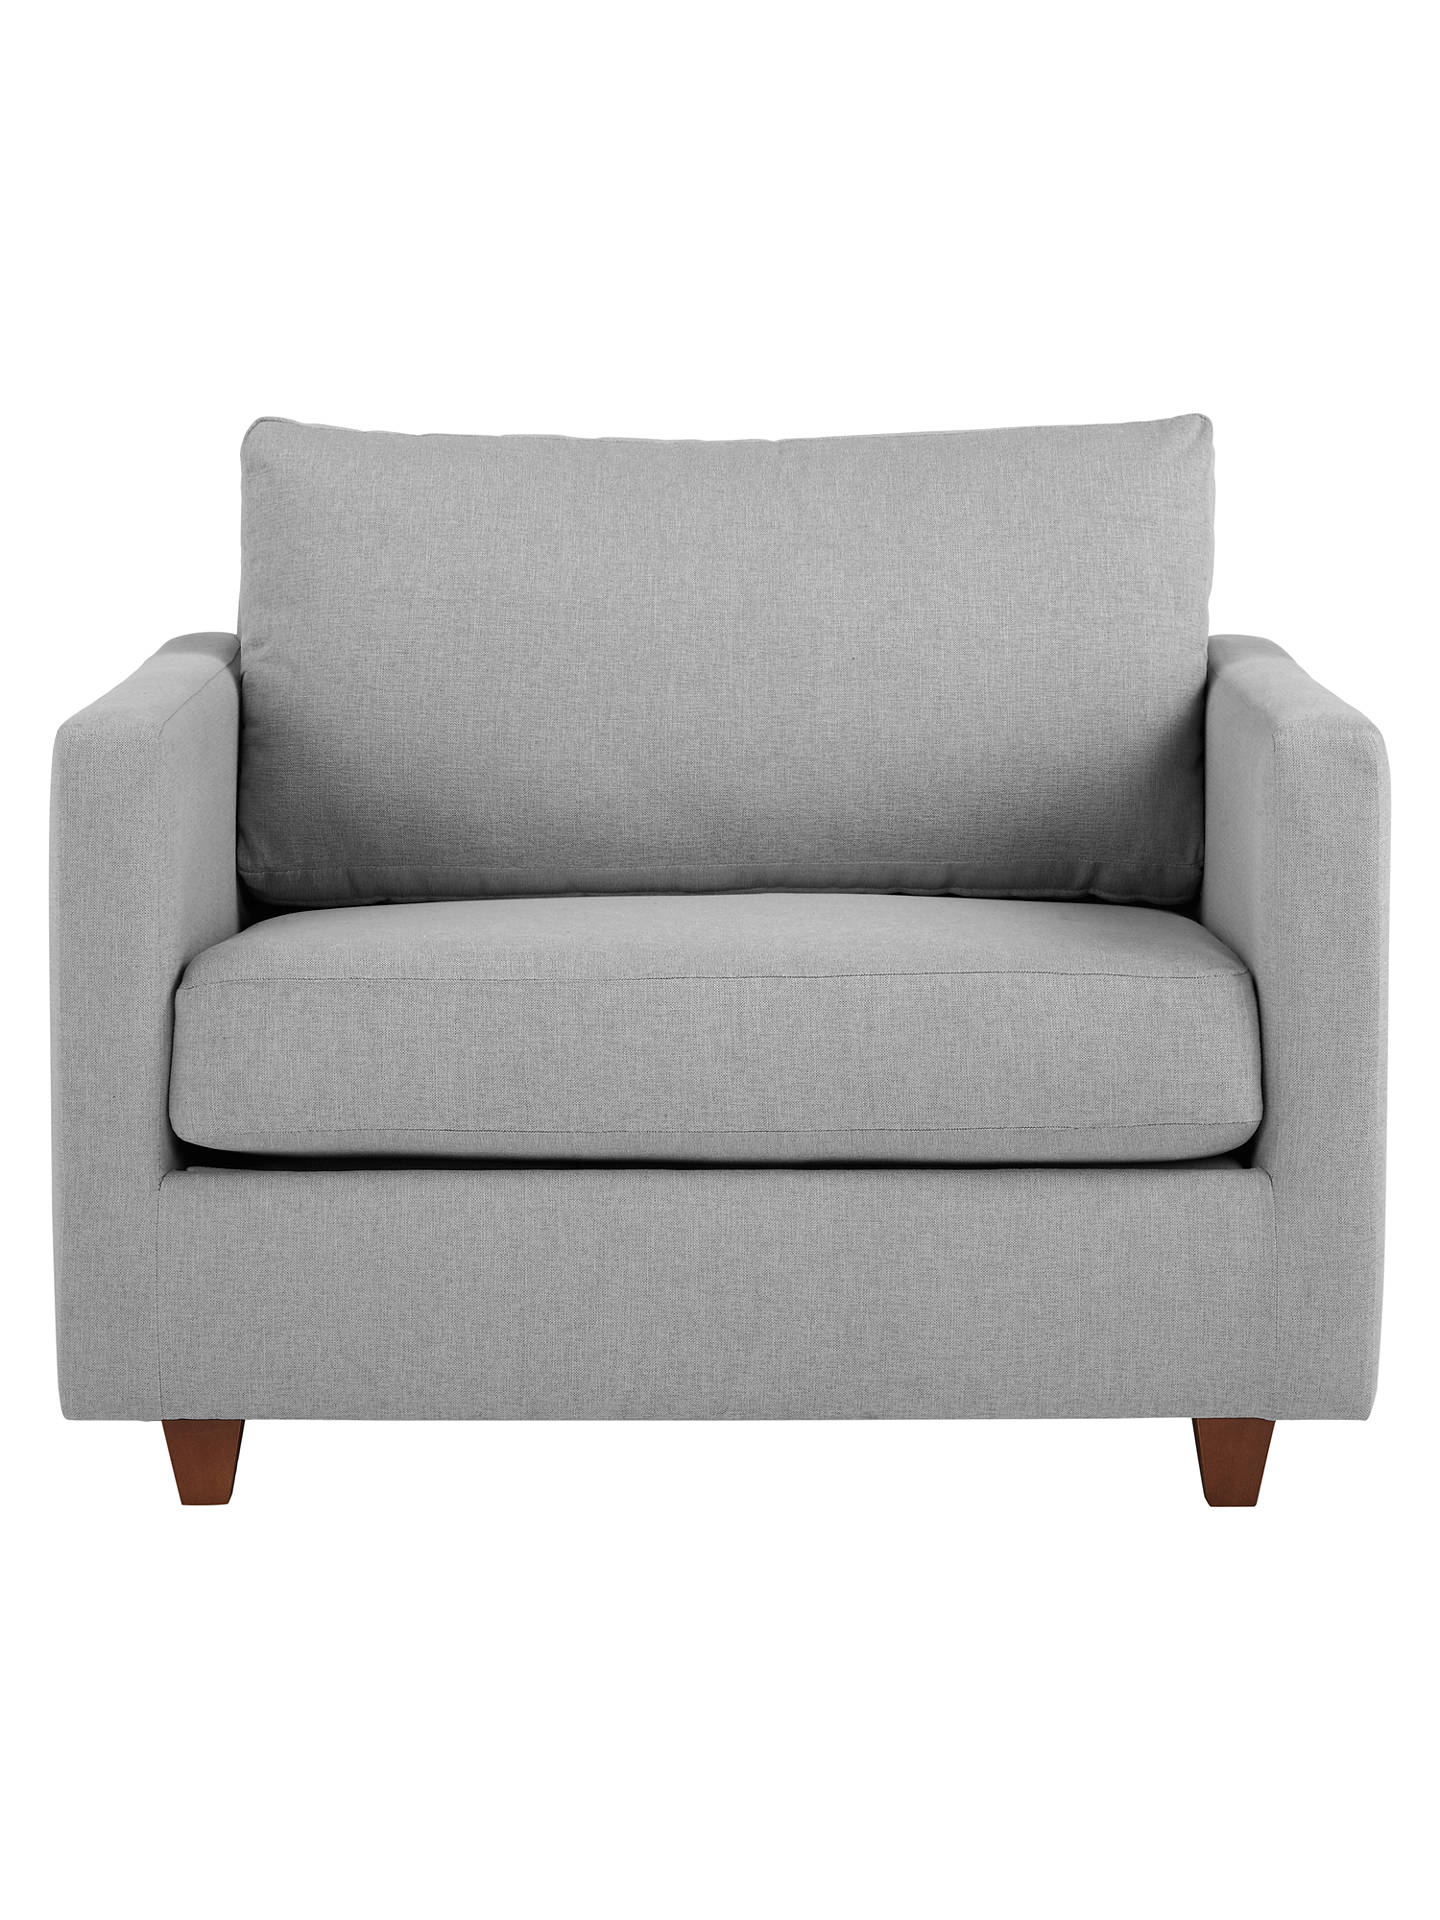 John Sofa Lewisamp; With Pocket Partners Bed Barlow Snuggler Mattress Sprung rdBCxoeEQW